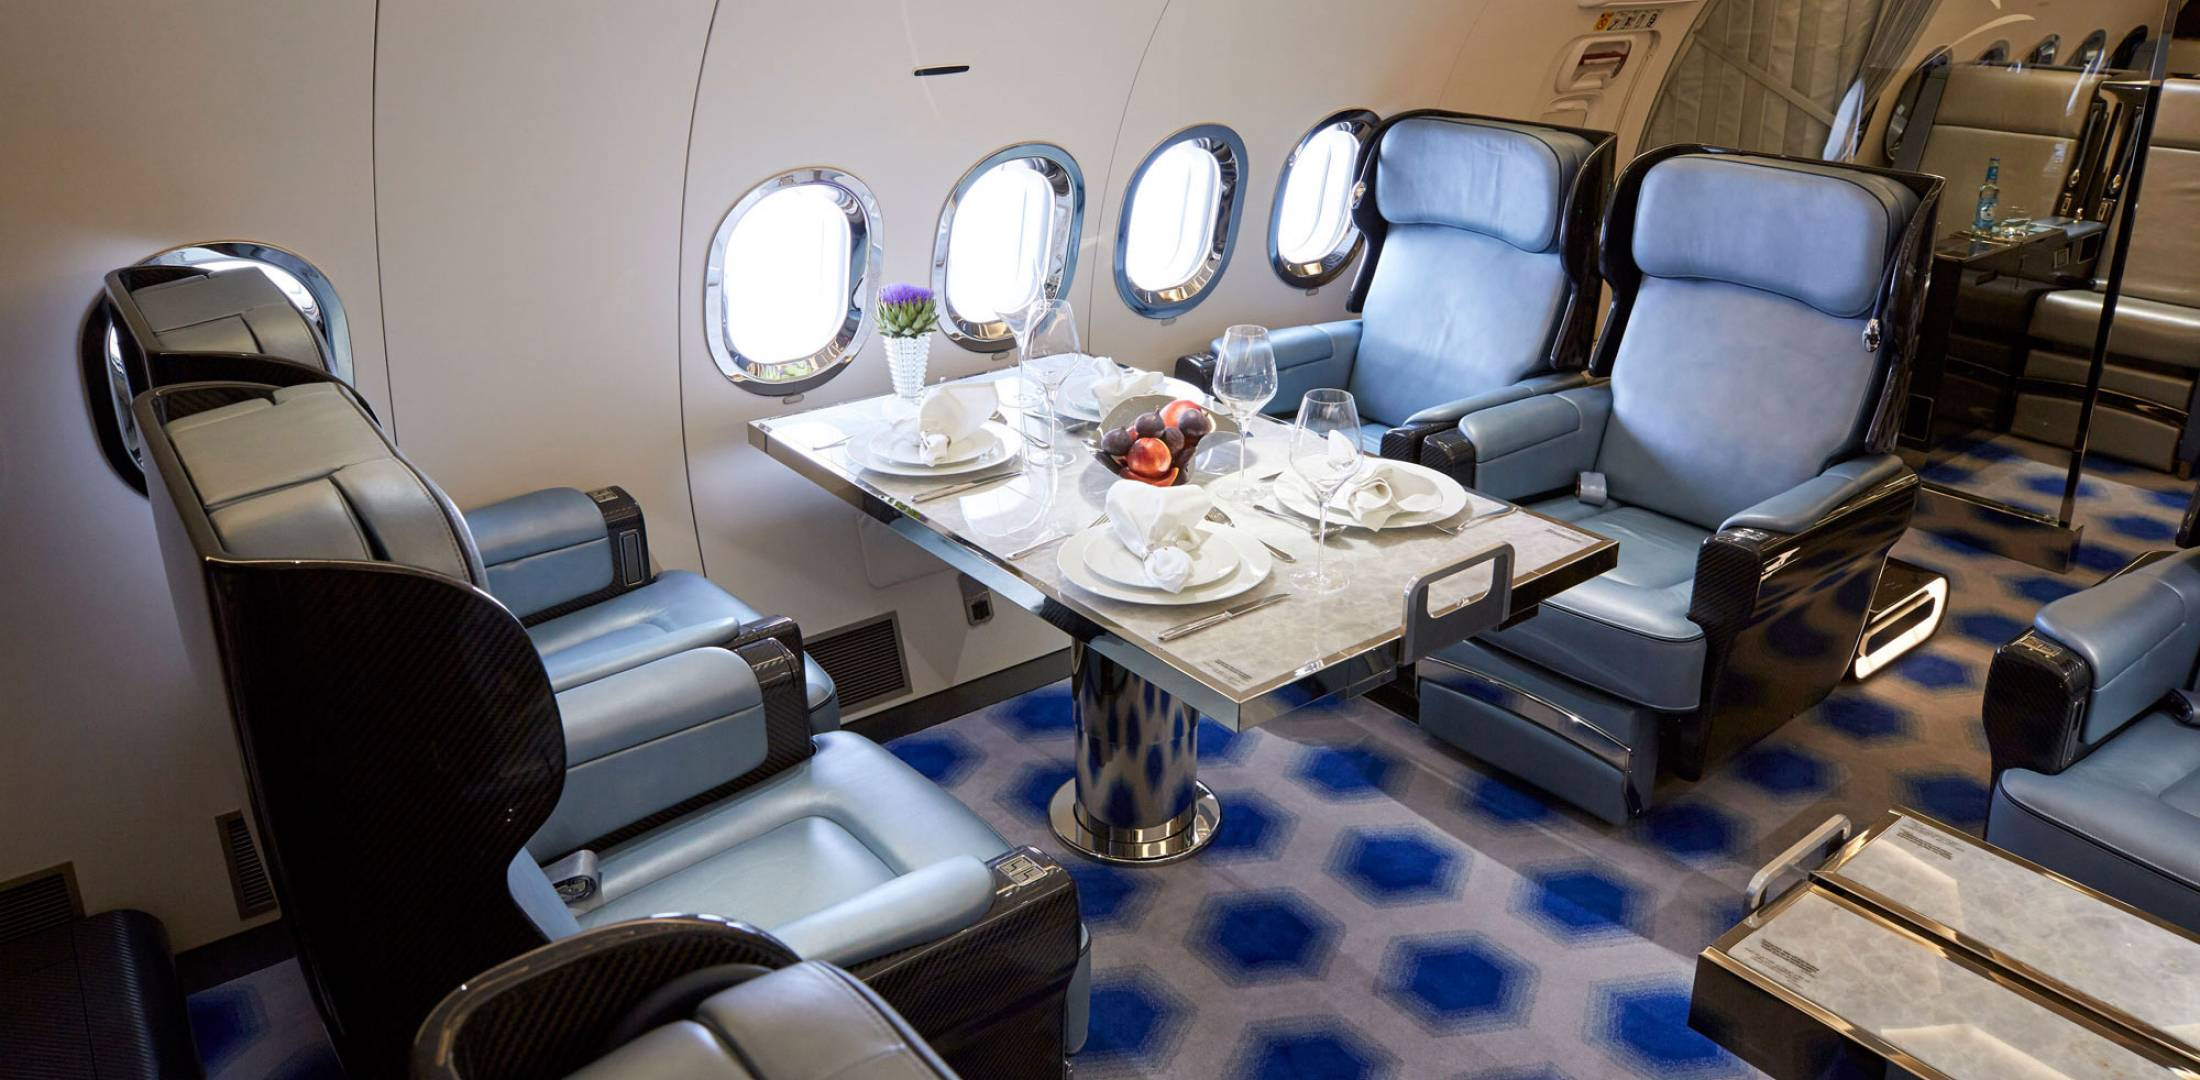 one of the two boeing business jet interiors lufthansa technik recently completed for dubai based royal jet is on display at mebaa - Business Jet Interior Design